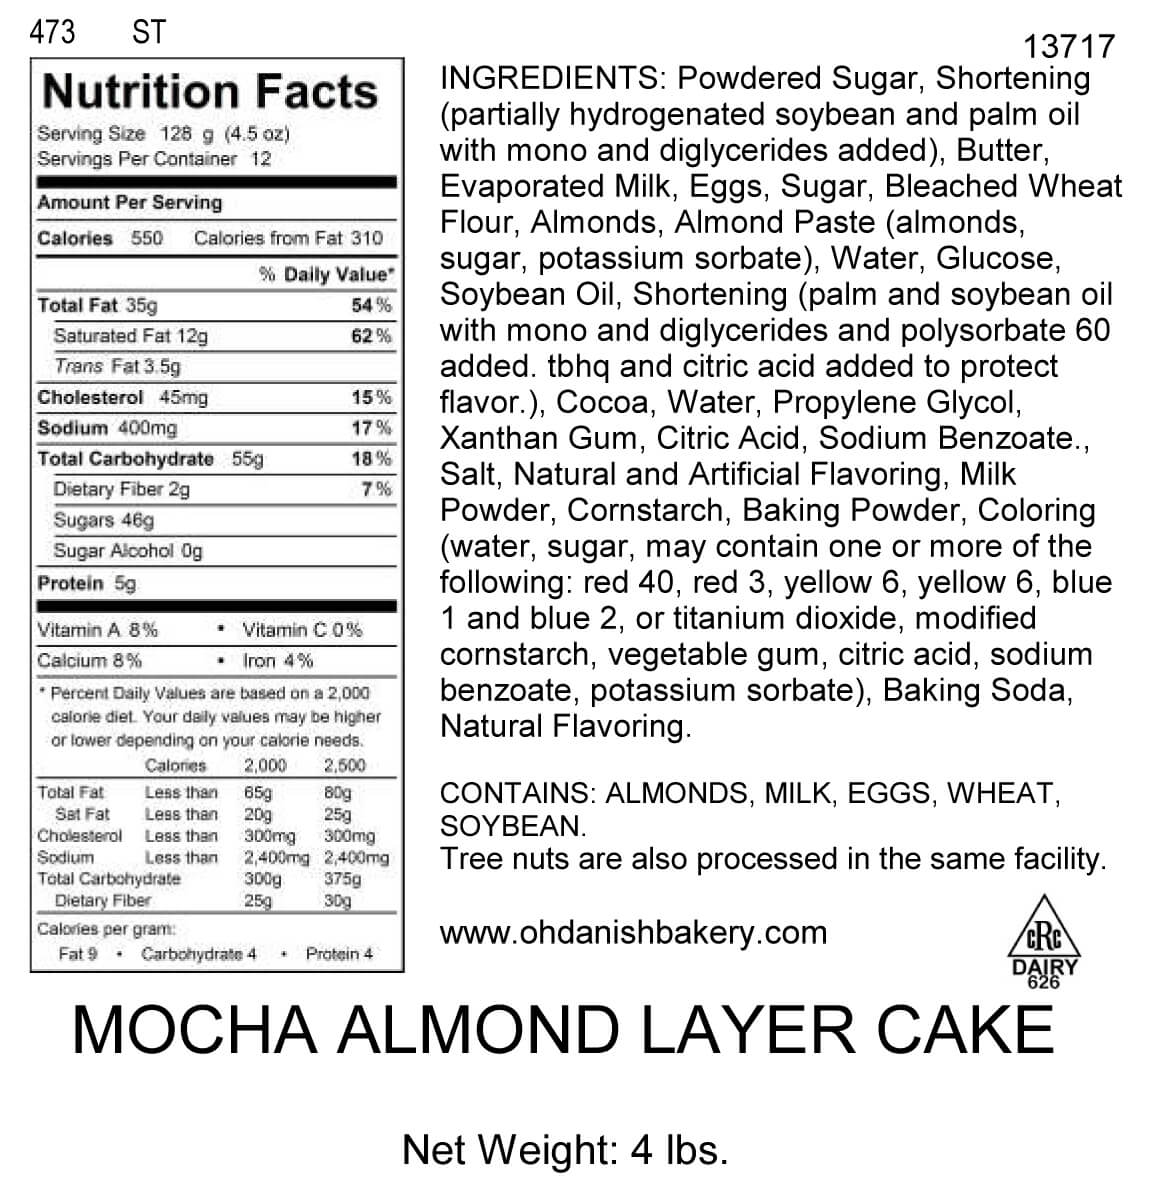 Nutritional Label for Mocha Almond Layer Cake